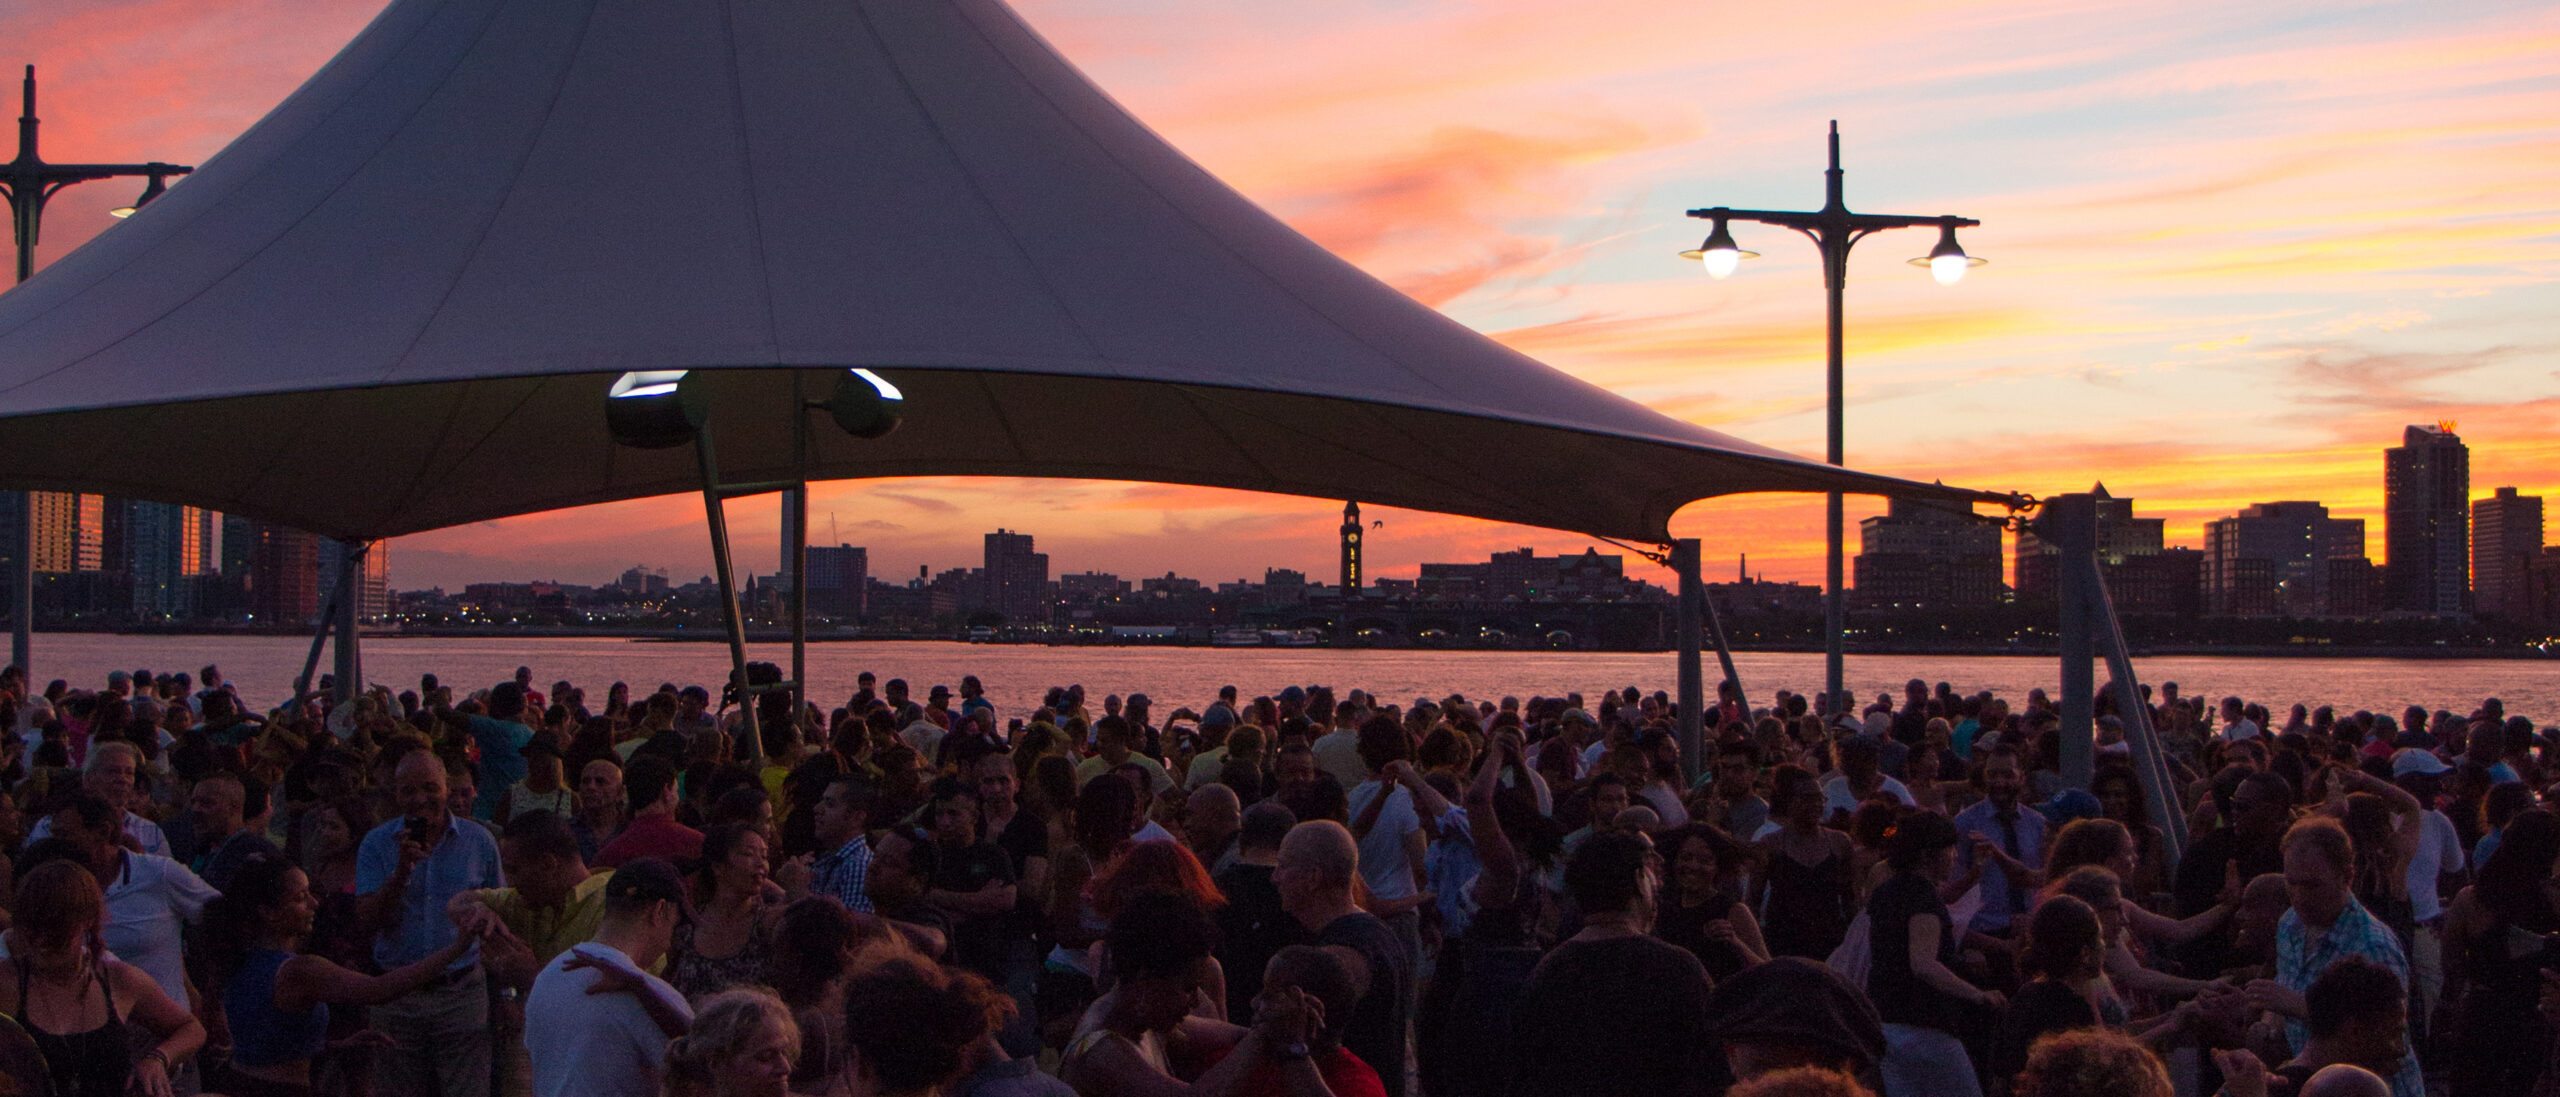 The sunset over Pier 45 during Salsa with Talia in Hudson River Park